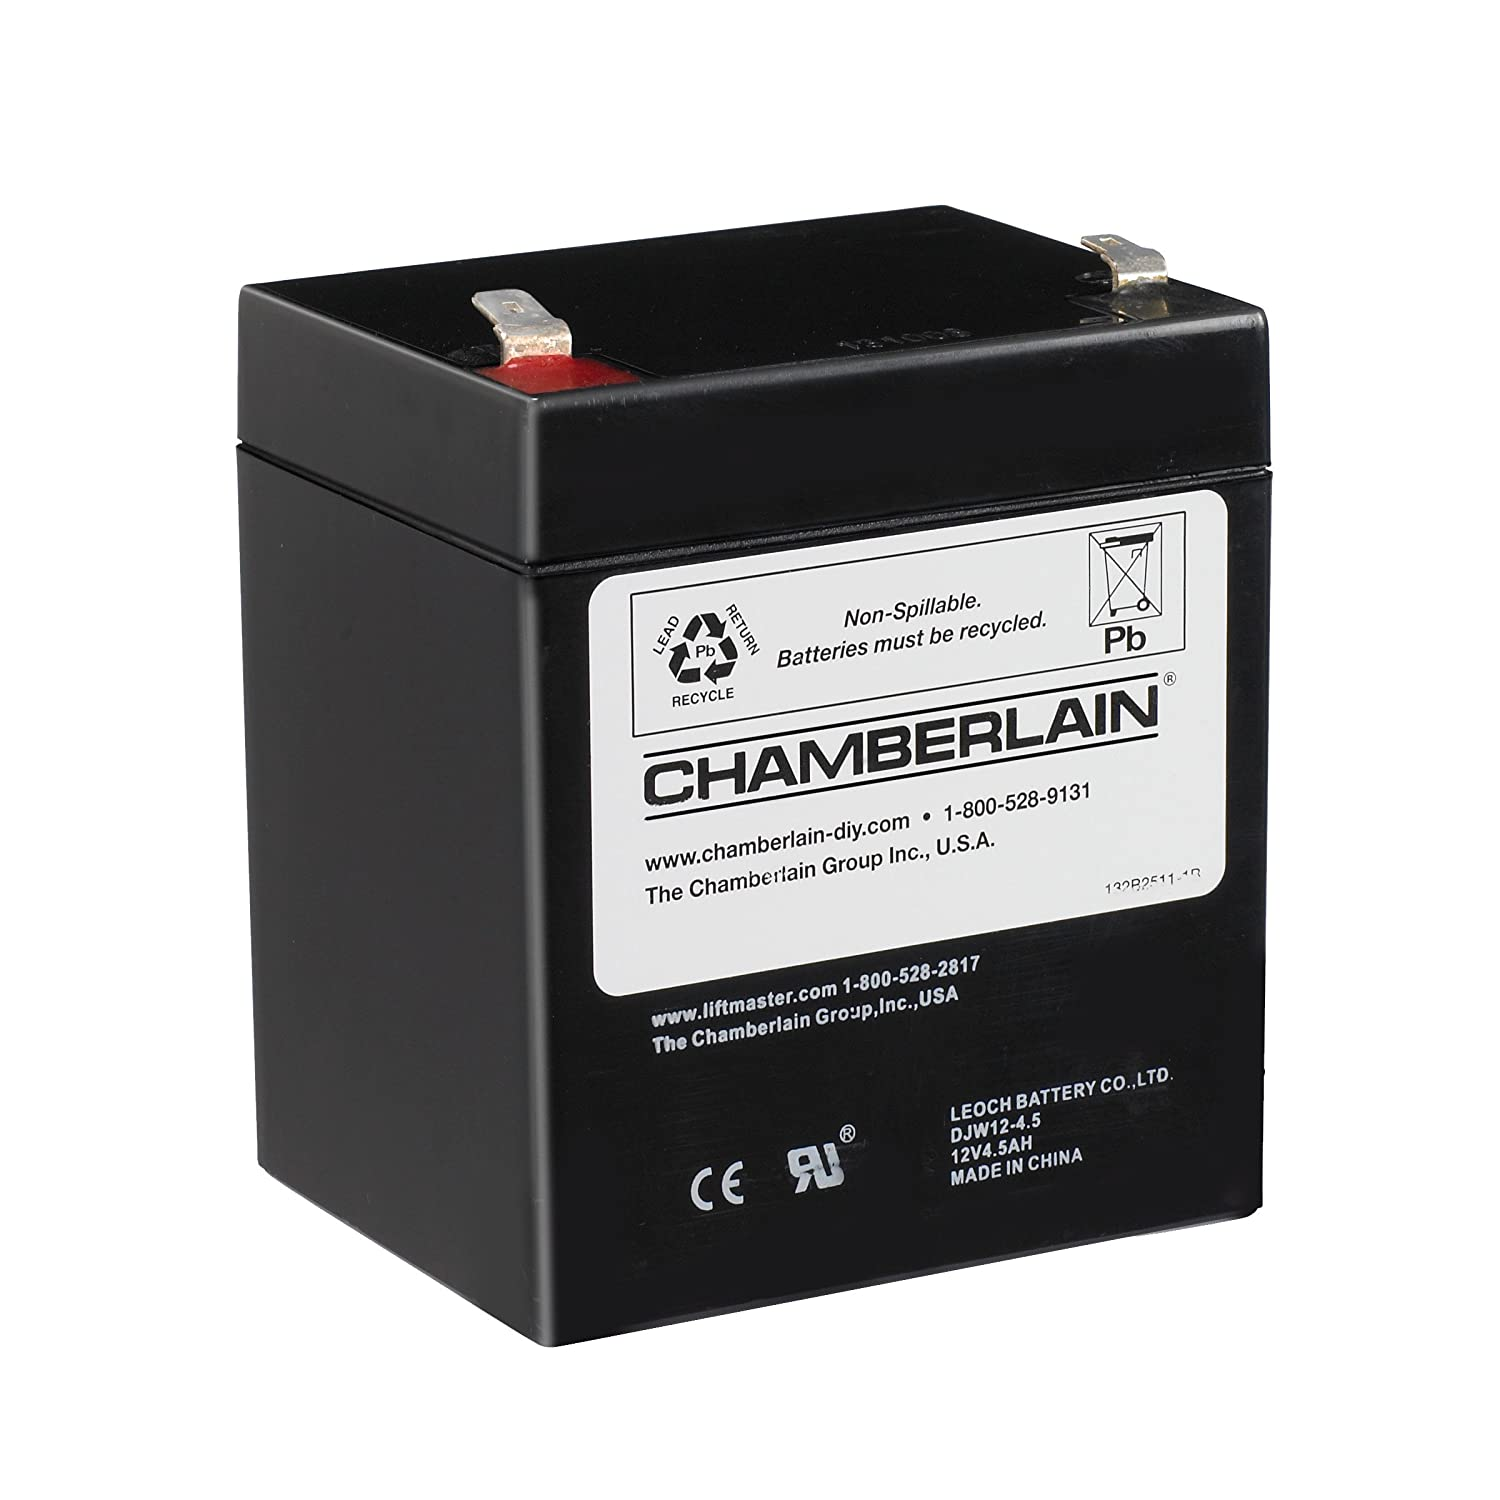 Chamberlain Liftmaster Craftsman 4228 Replacement Battery